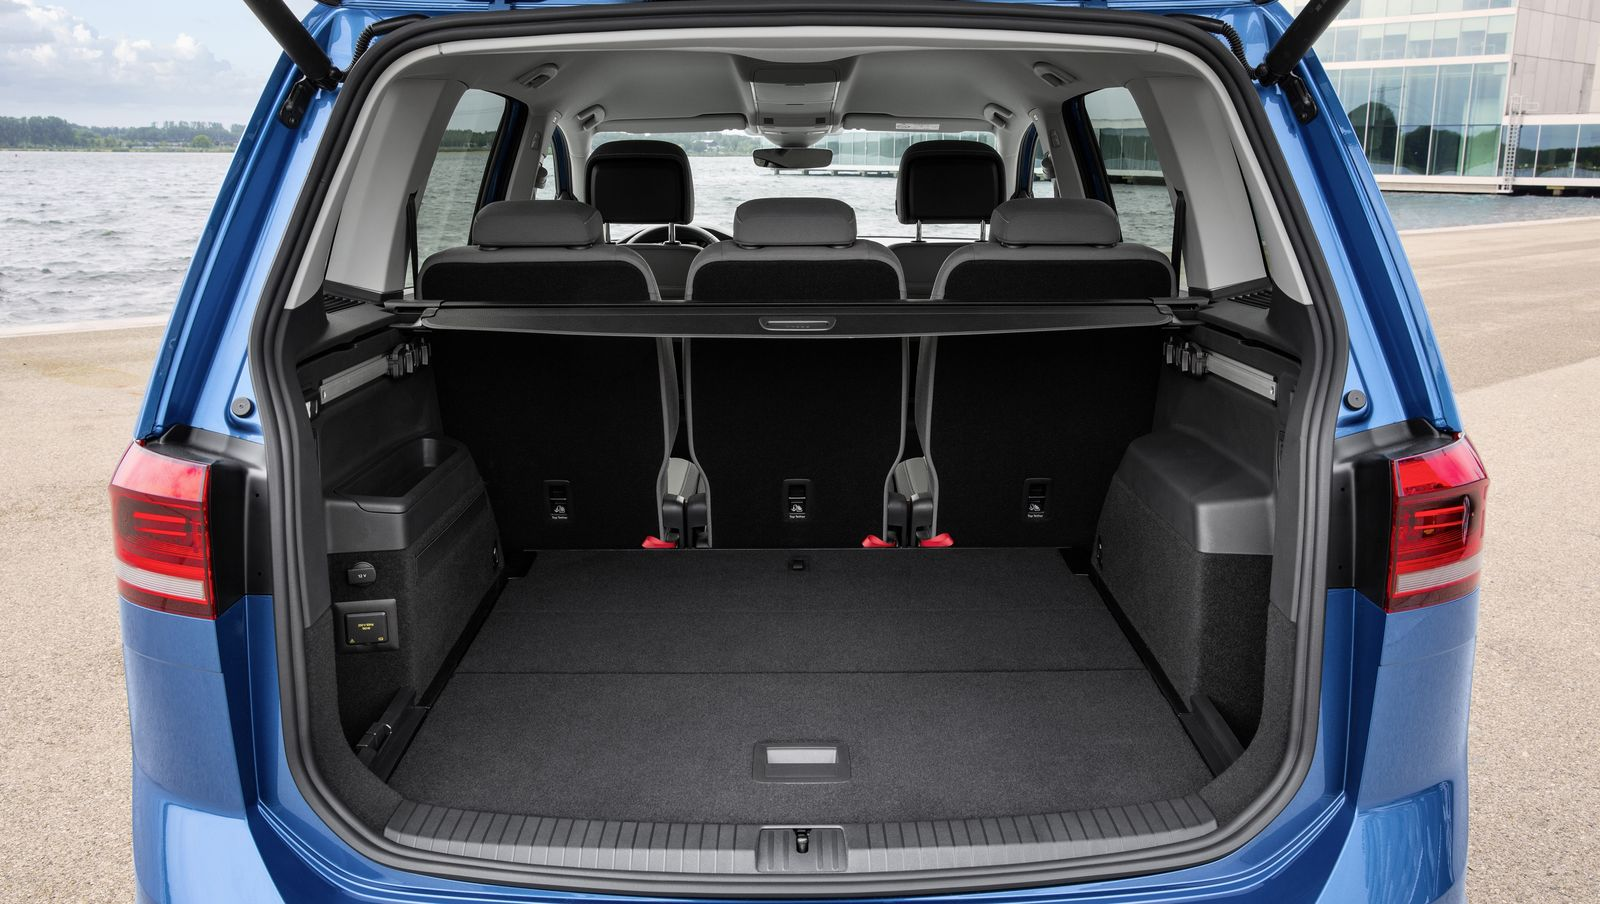 vw touran sizes and dimensions guide carwow. Black Bedroom Furniture Sets. Home Design Ideas